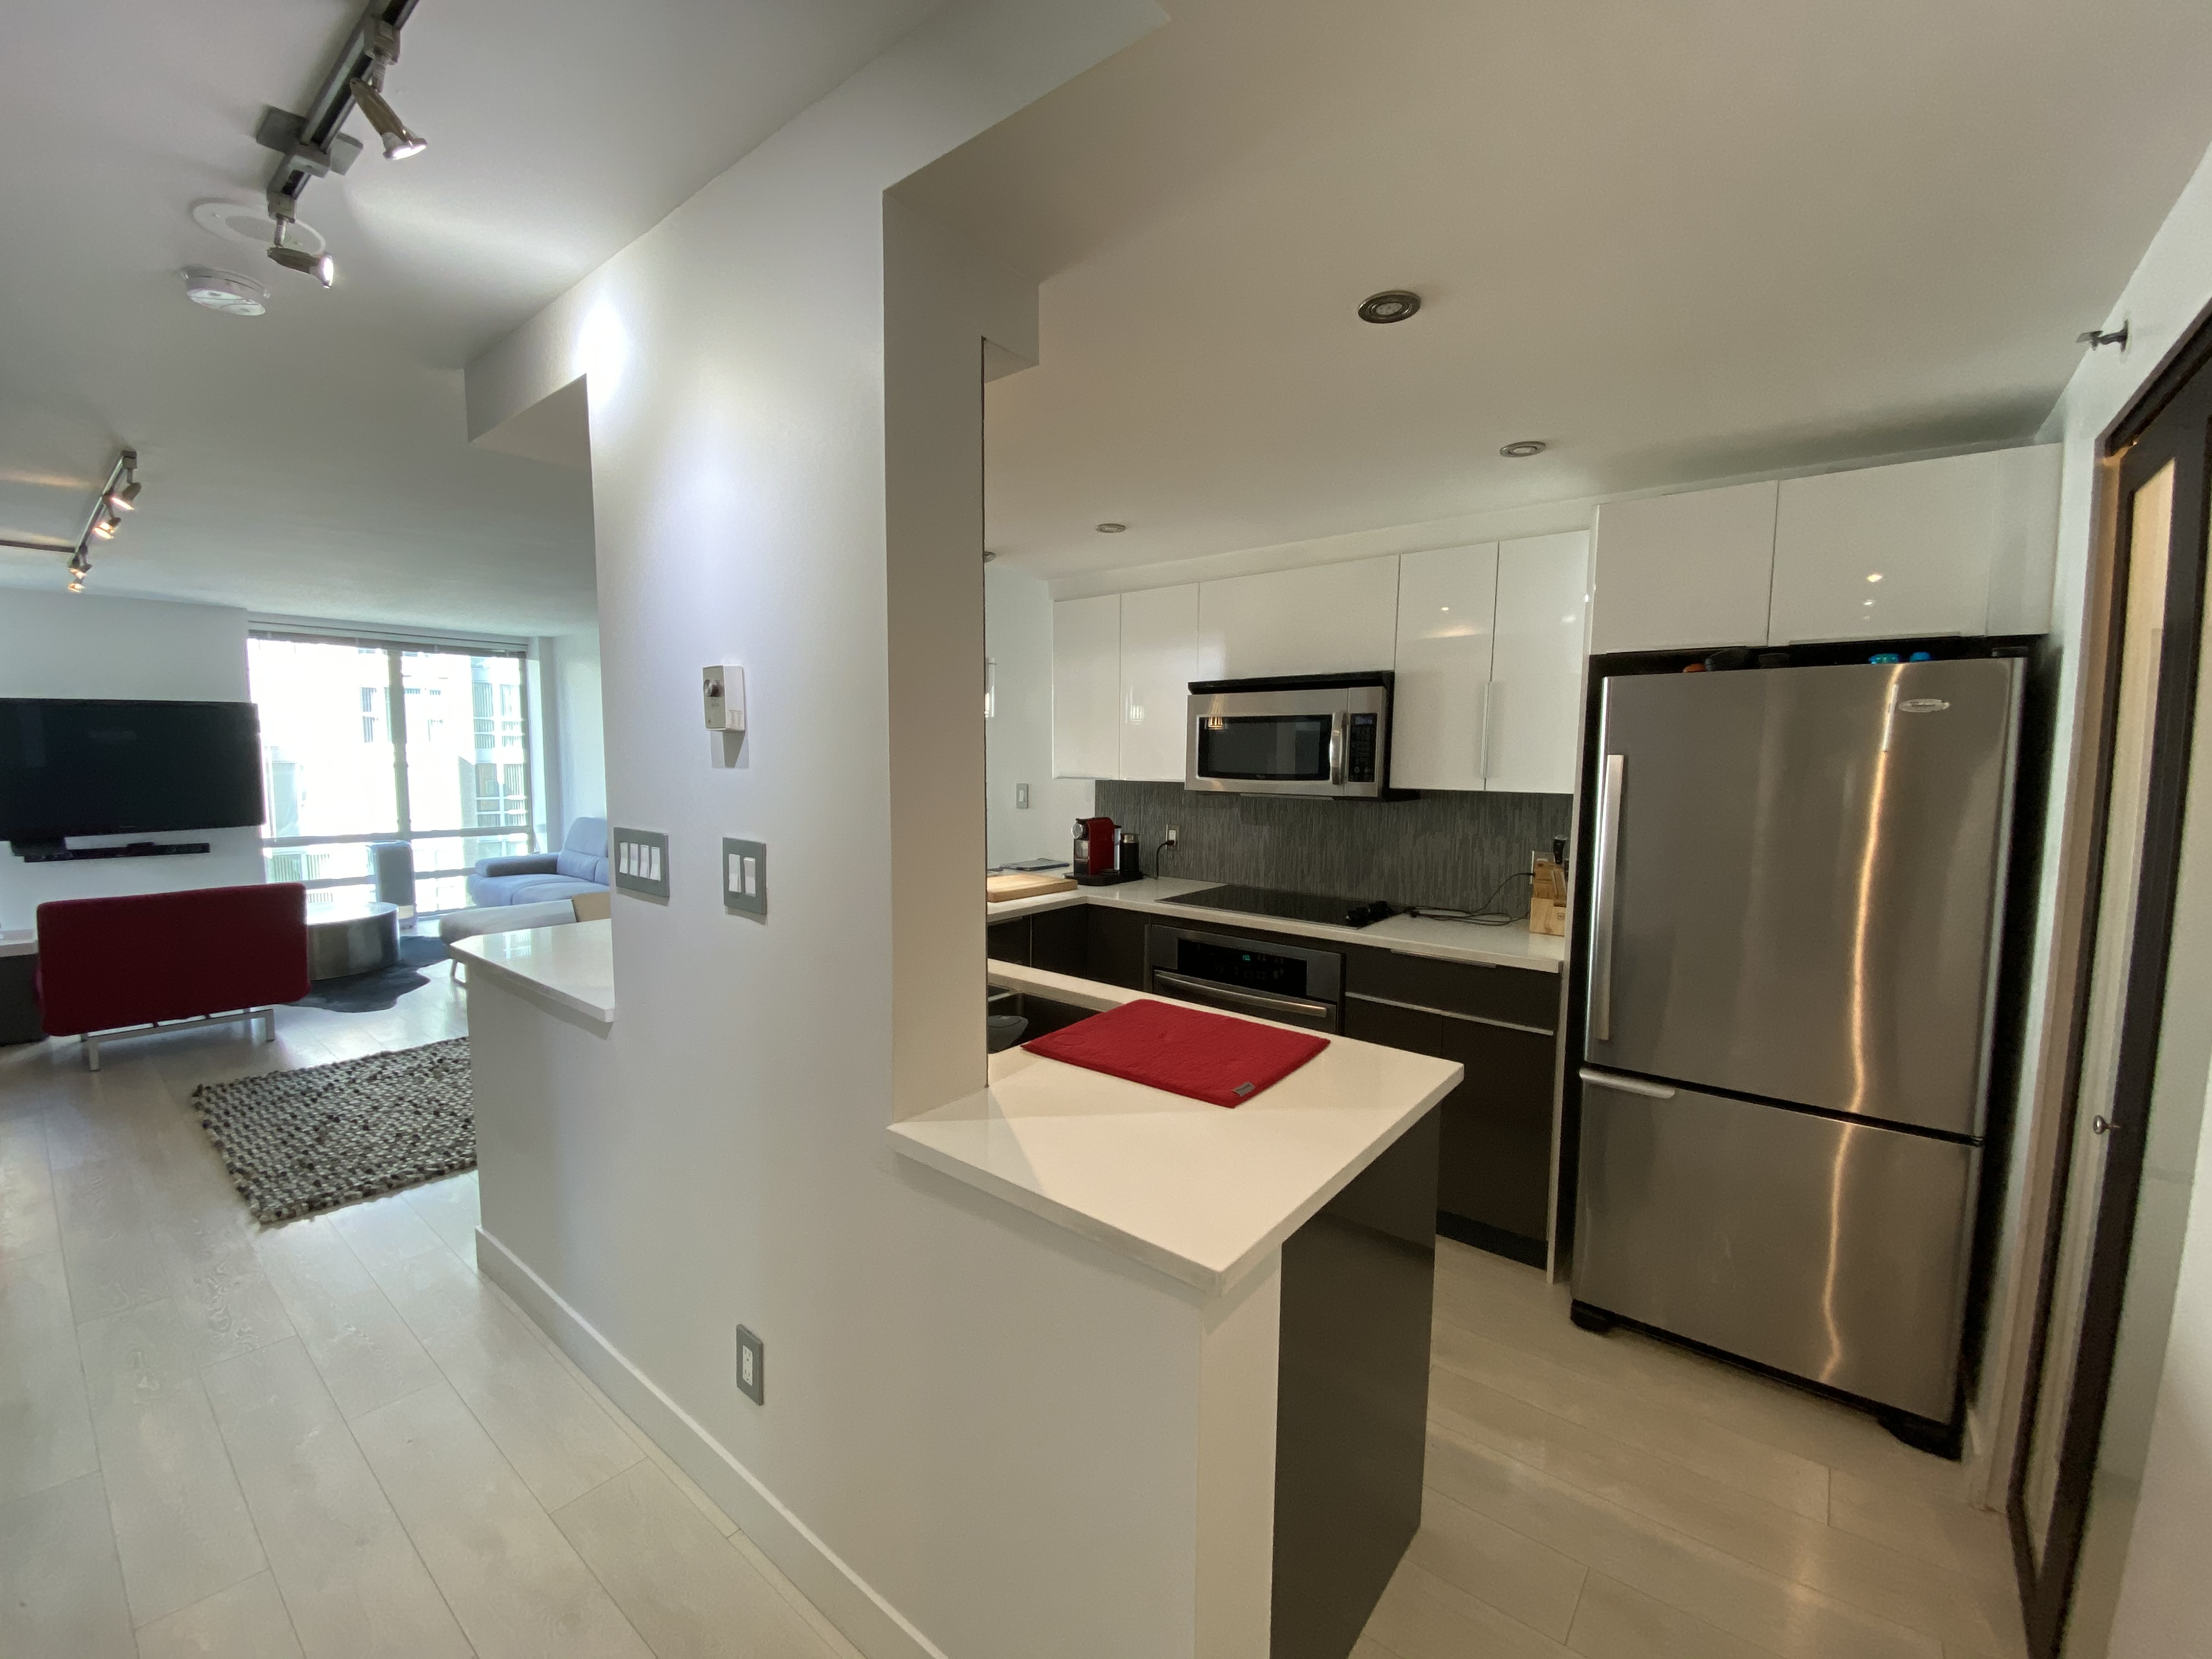 Unfurnished 888 Beach Ave Opportunity, The Best Location